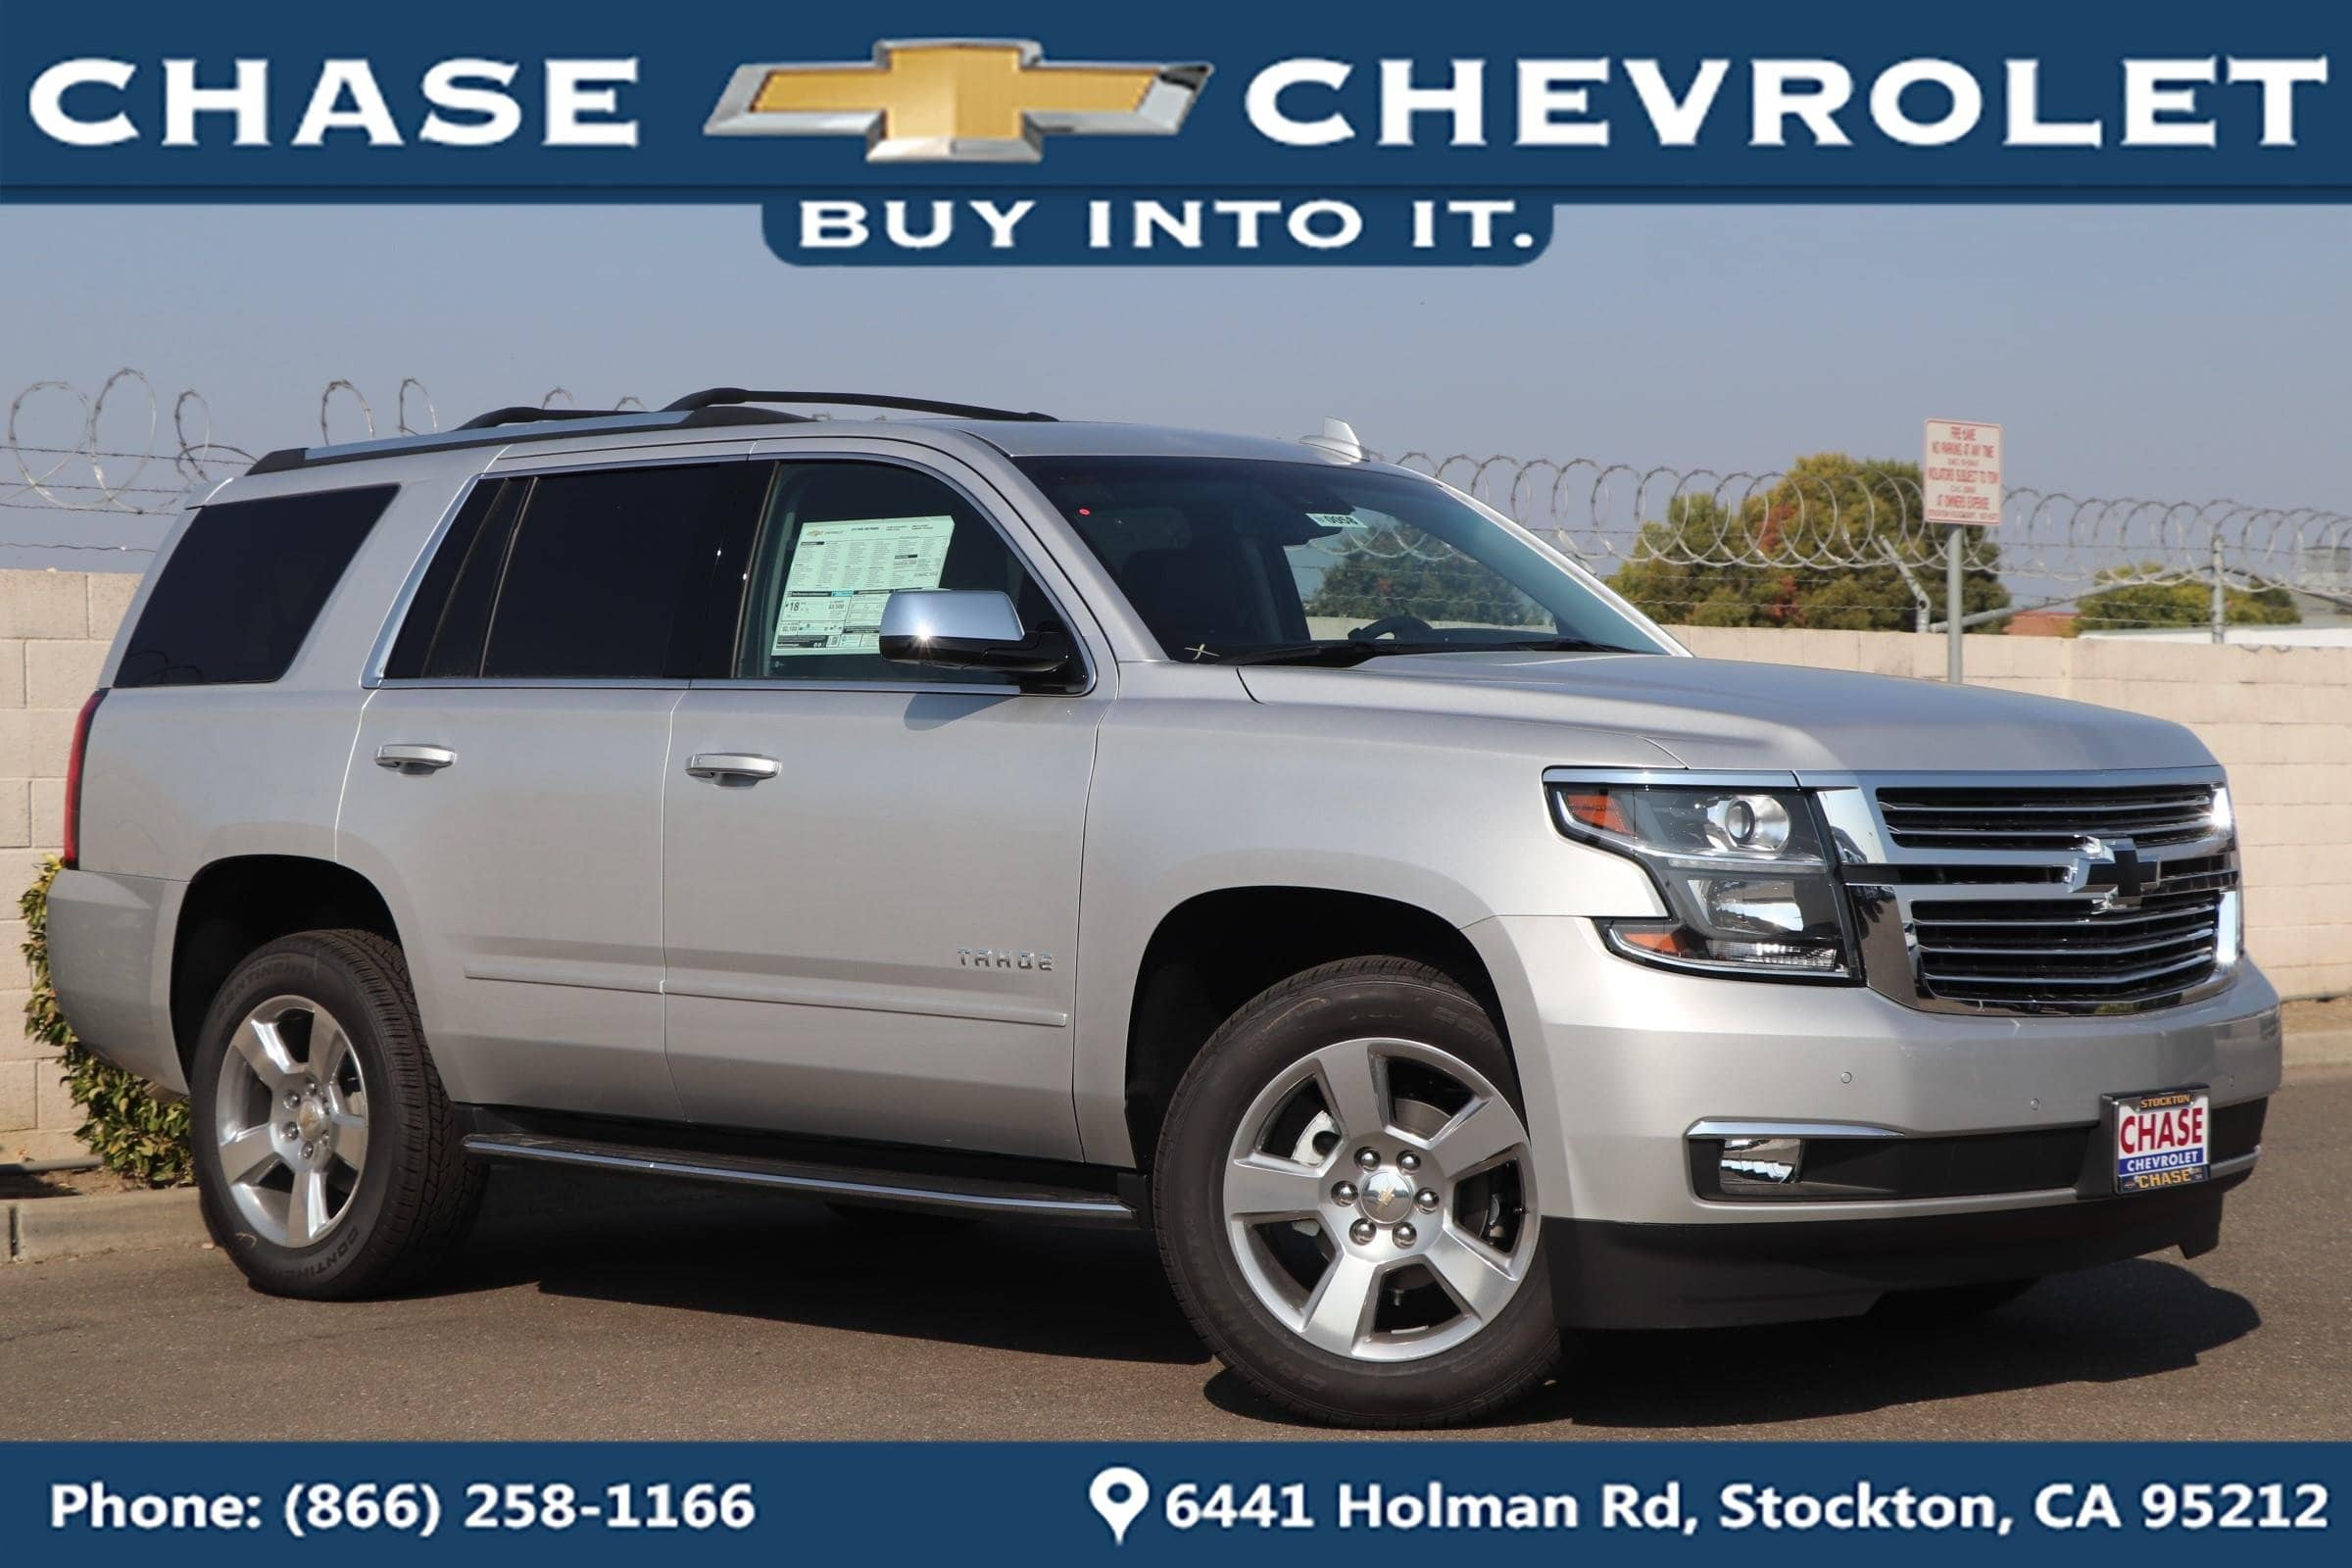 New 2019 Chevrolet Tahoe for Sale in Stockton CA